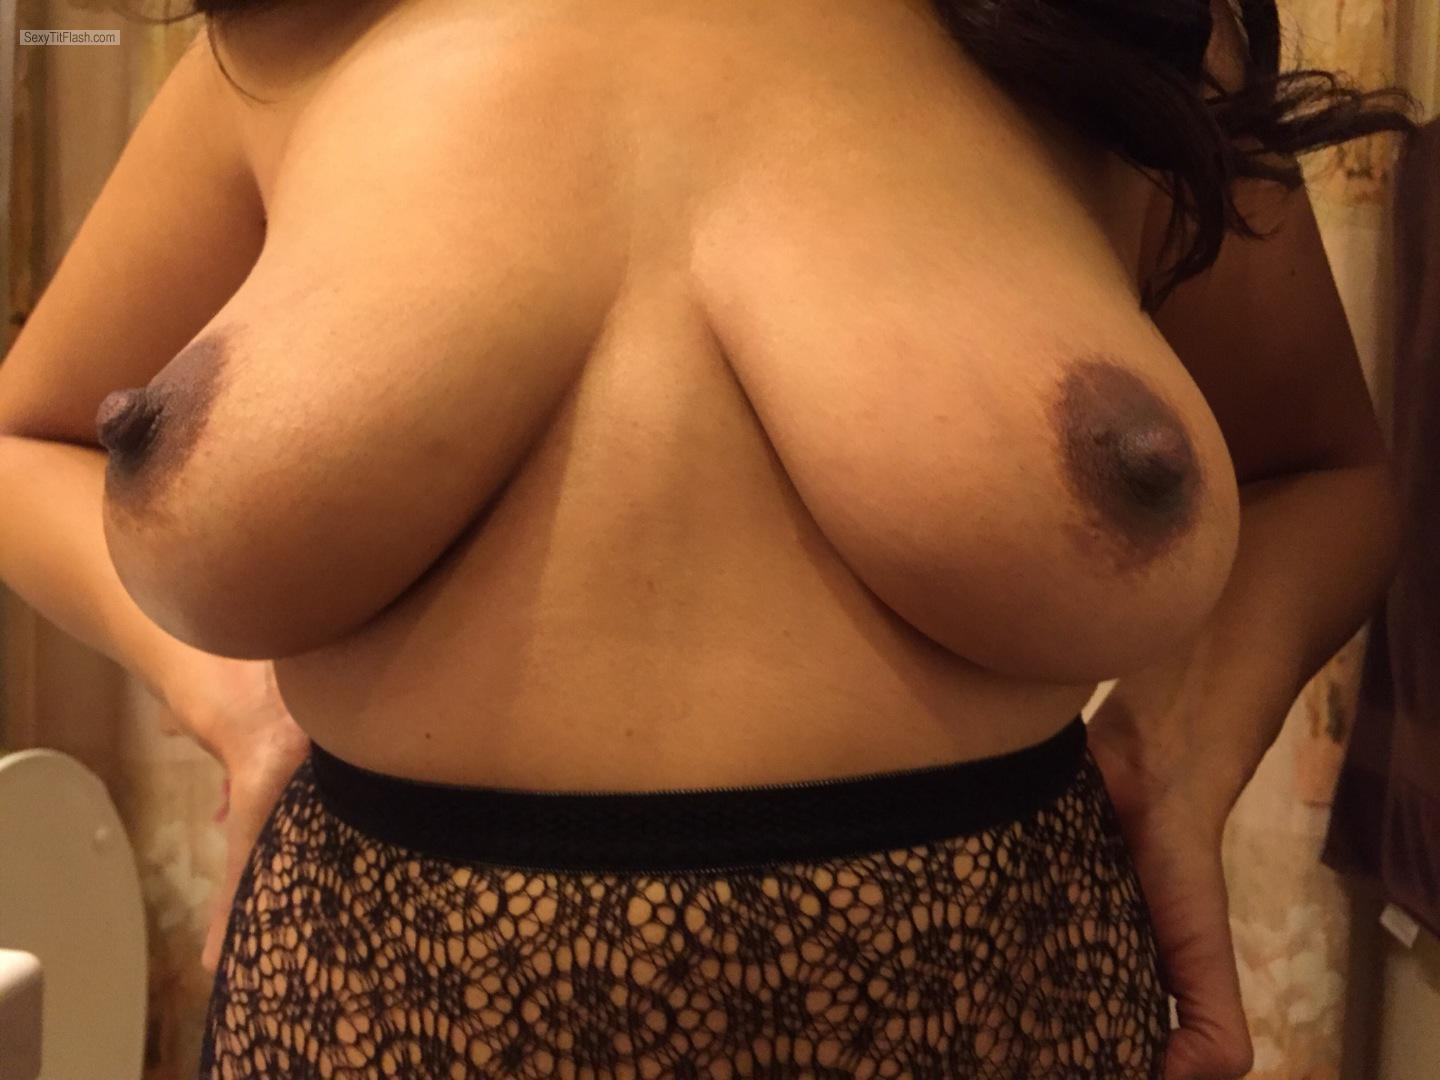 Big Tits Of My Girlfriend Sexy